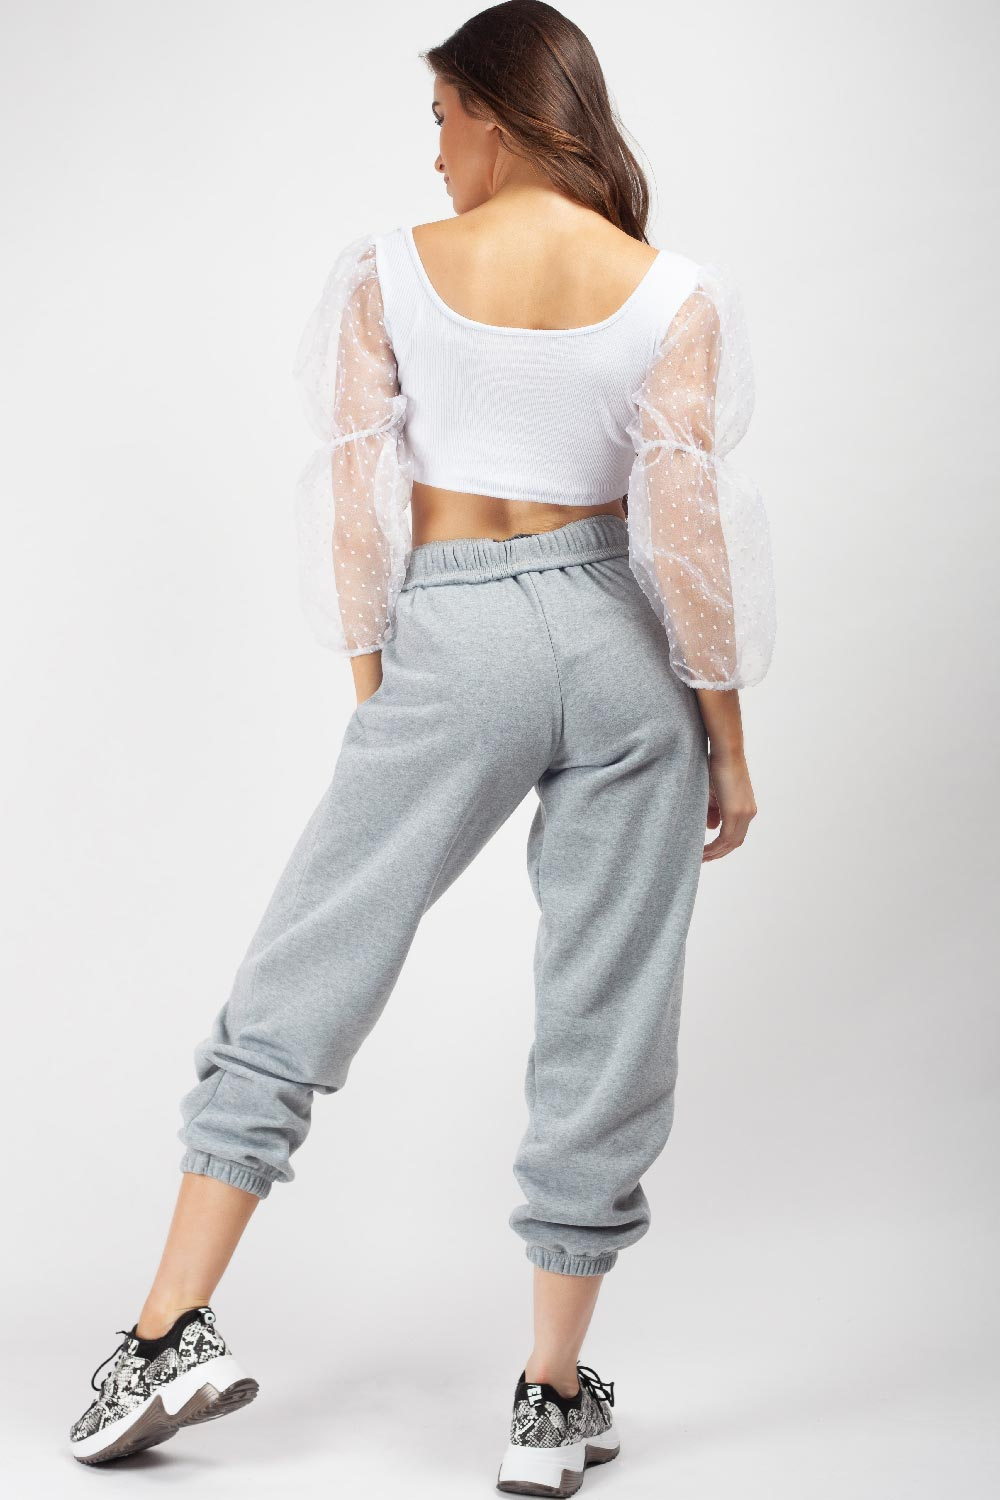 grey sweatpants women